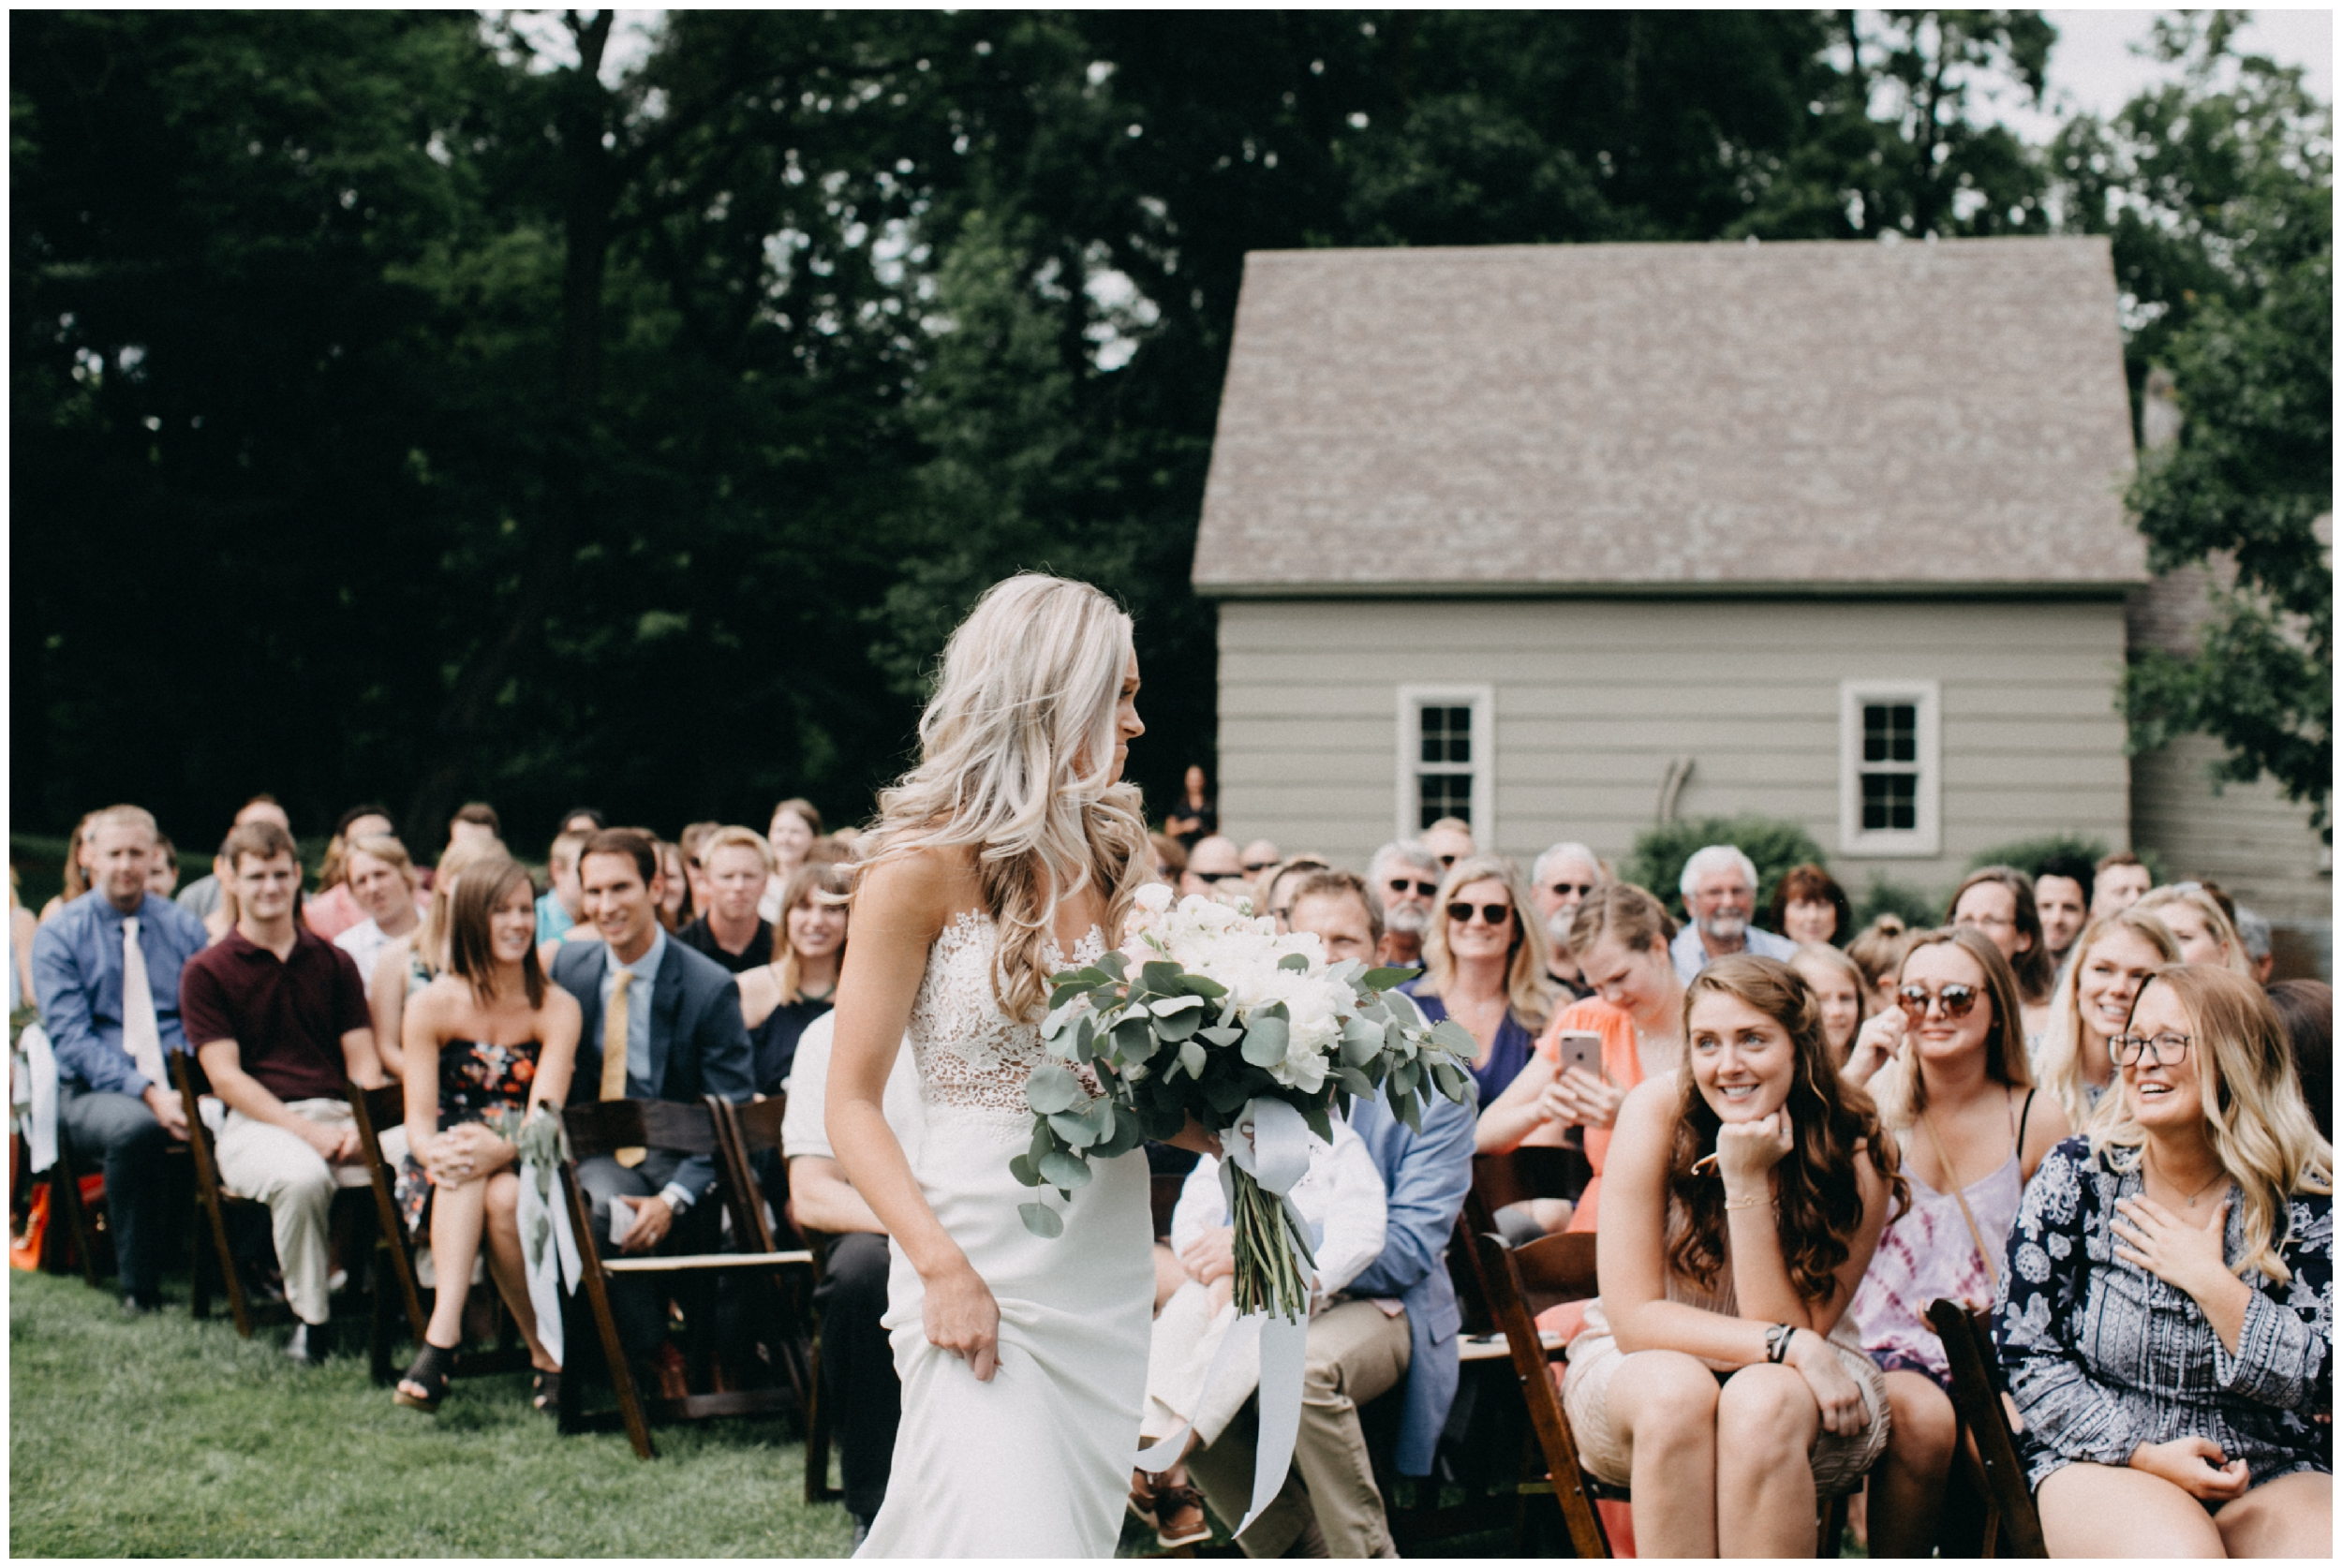 Emotional bride walking down aisle at Creekside Farm wedding ceremony